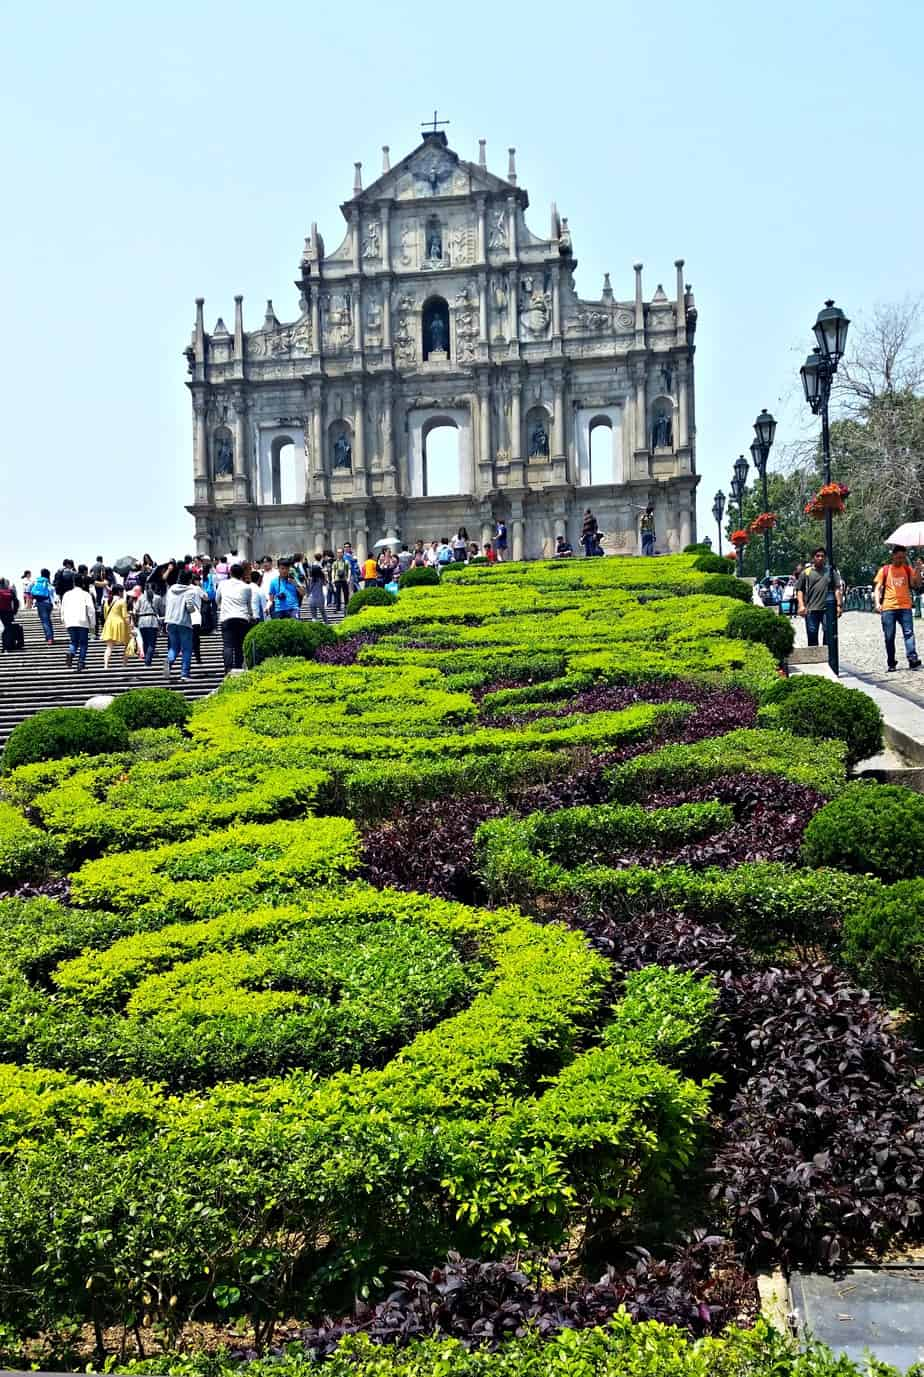 Macau Ruins of St. Paul